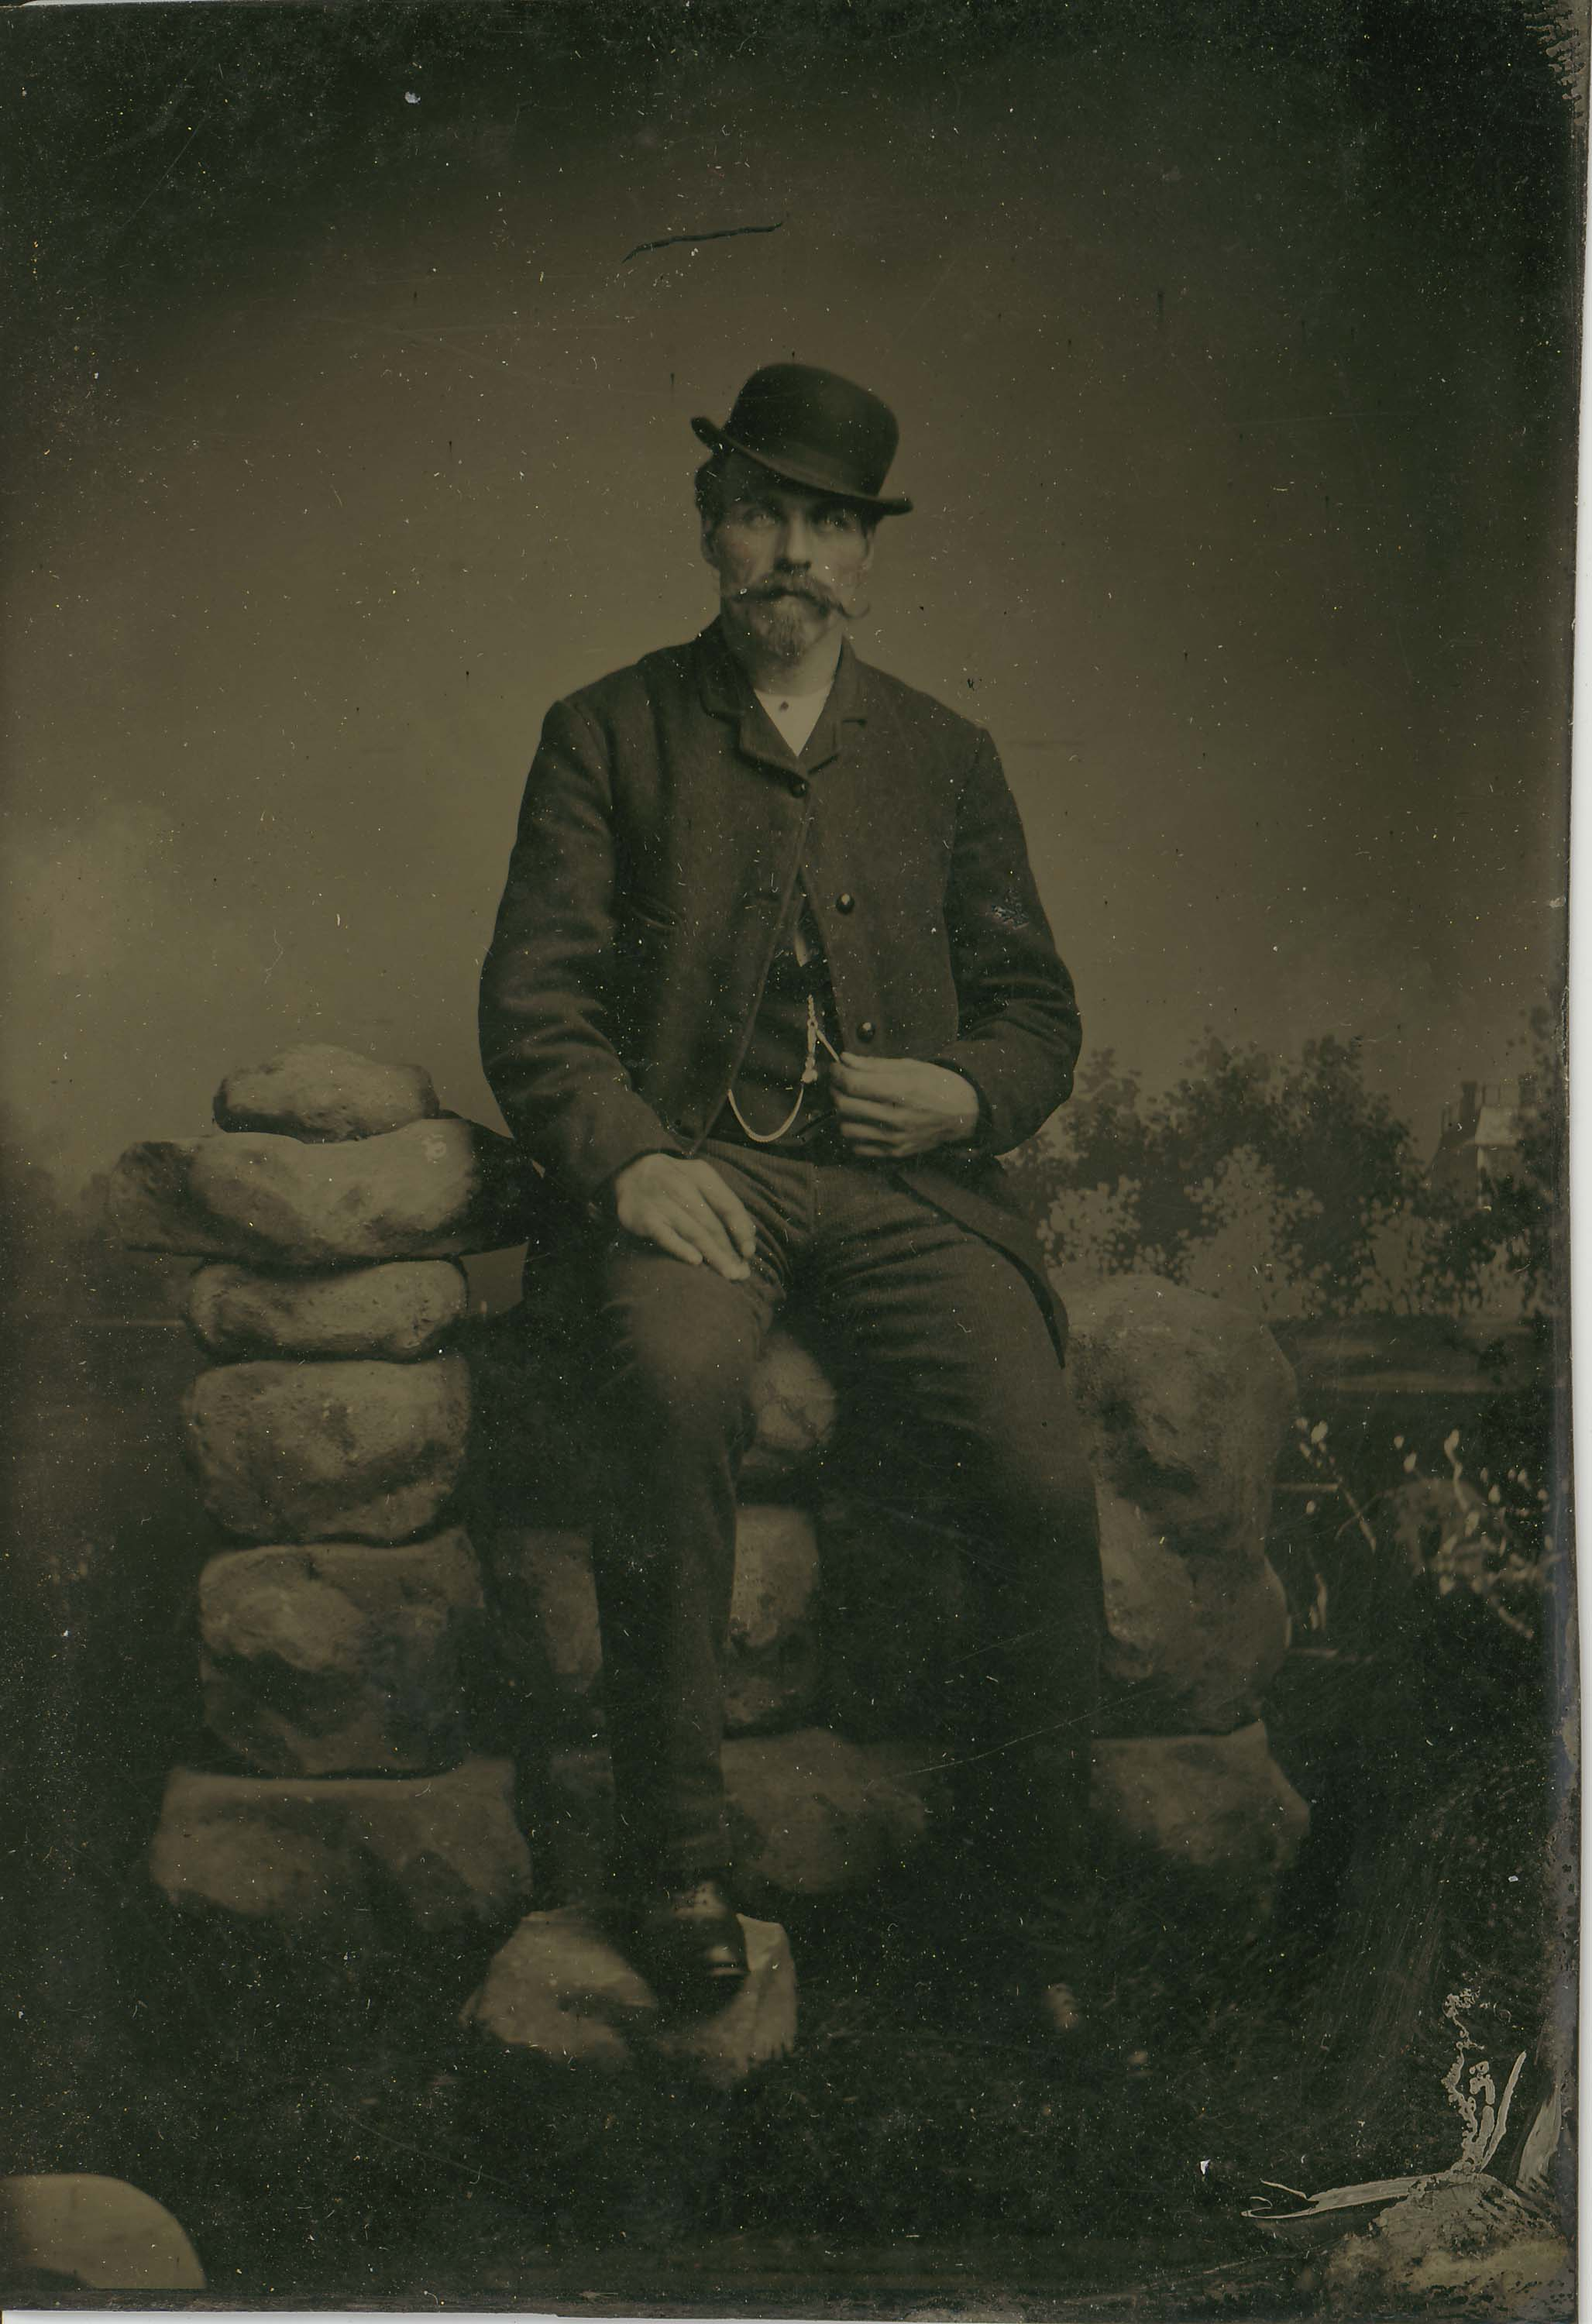 Tin-type-4-Man-seated-on-rock-Wall